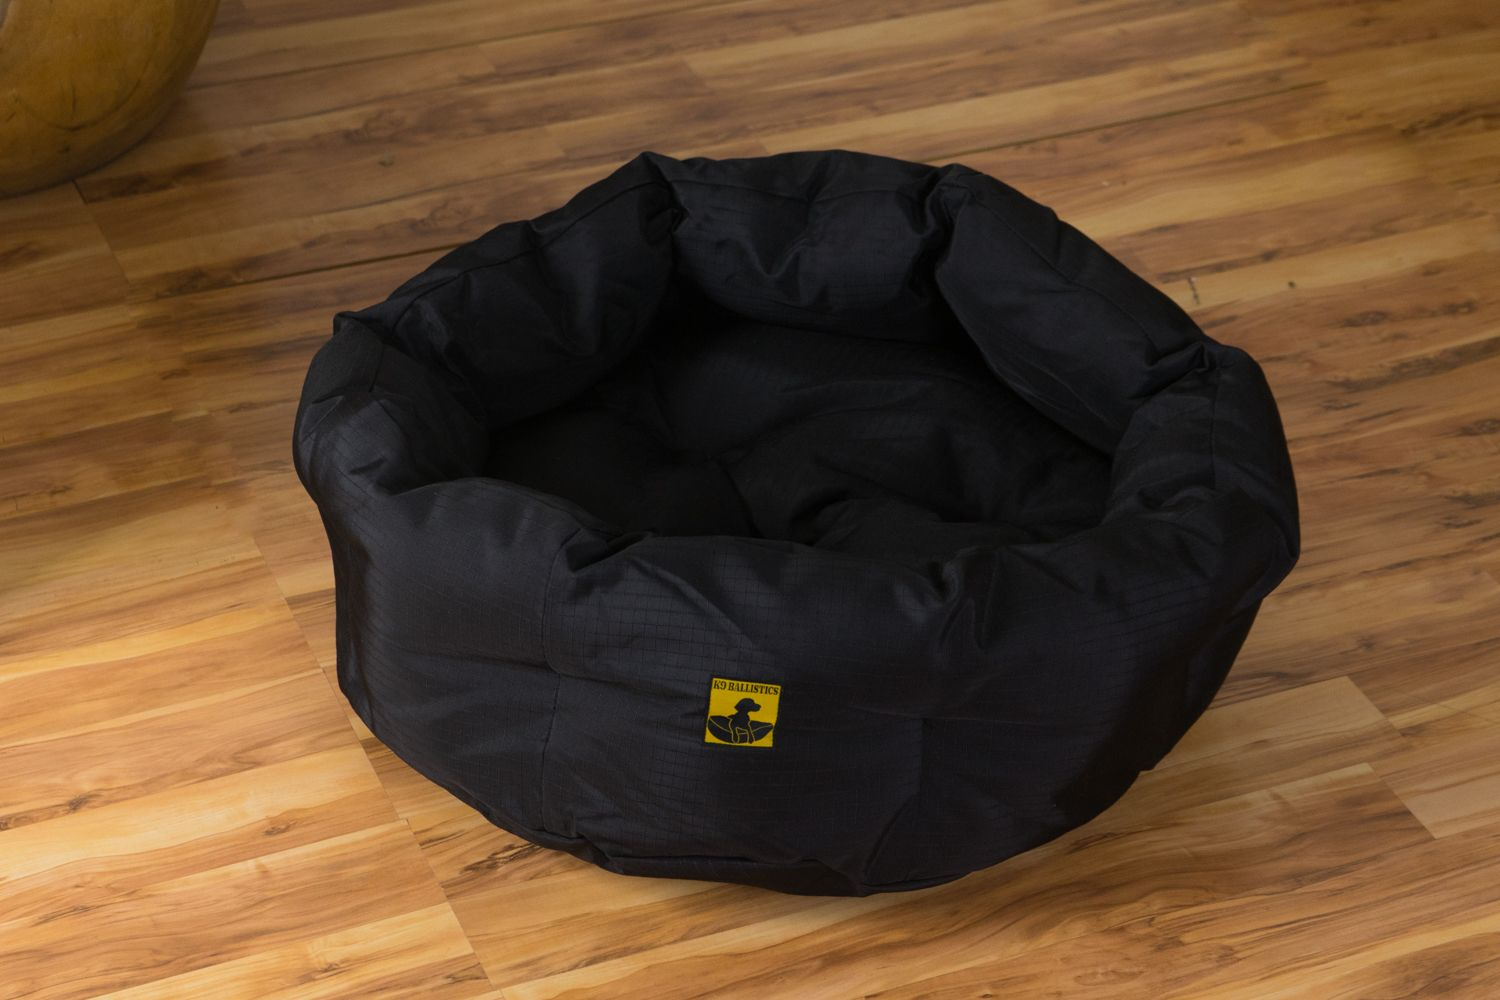 Tough Deep Den Dog Bed™ Round dog bed, Chew proof dog